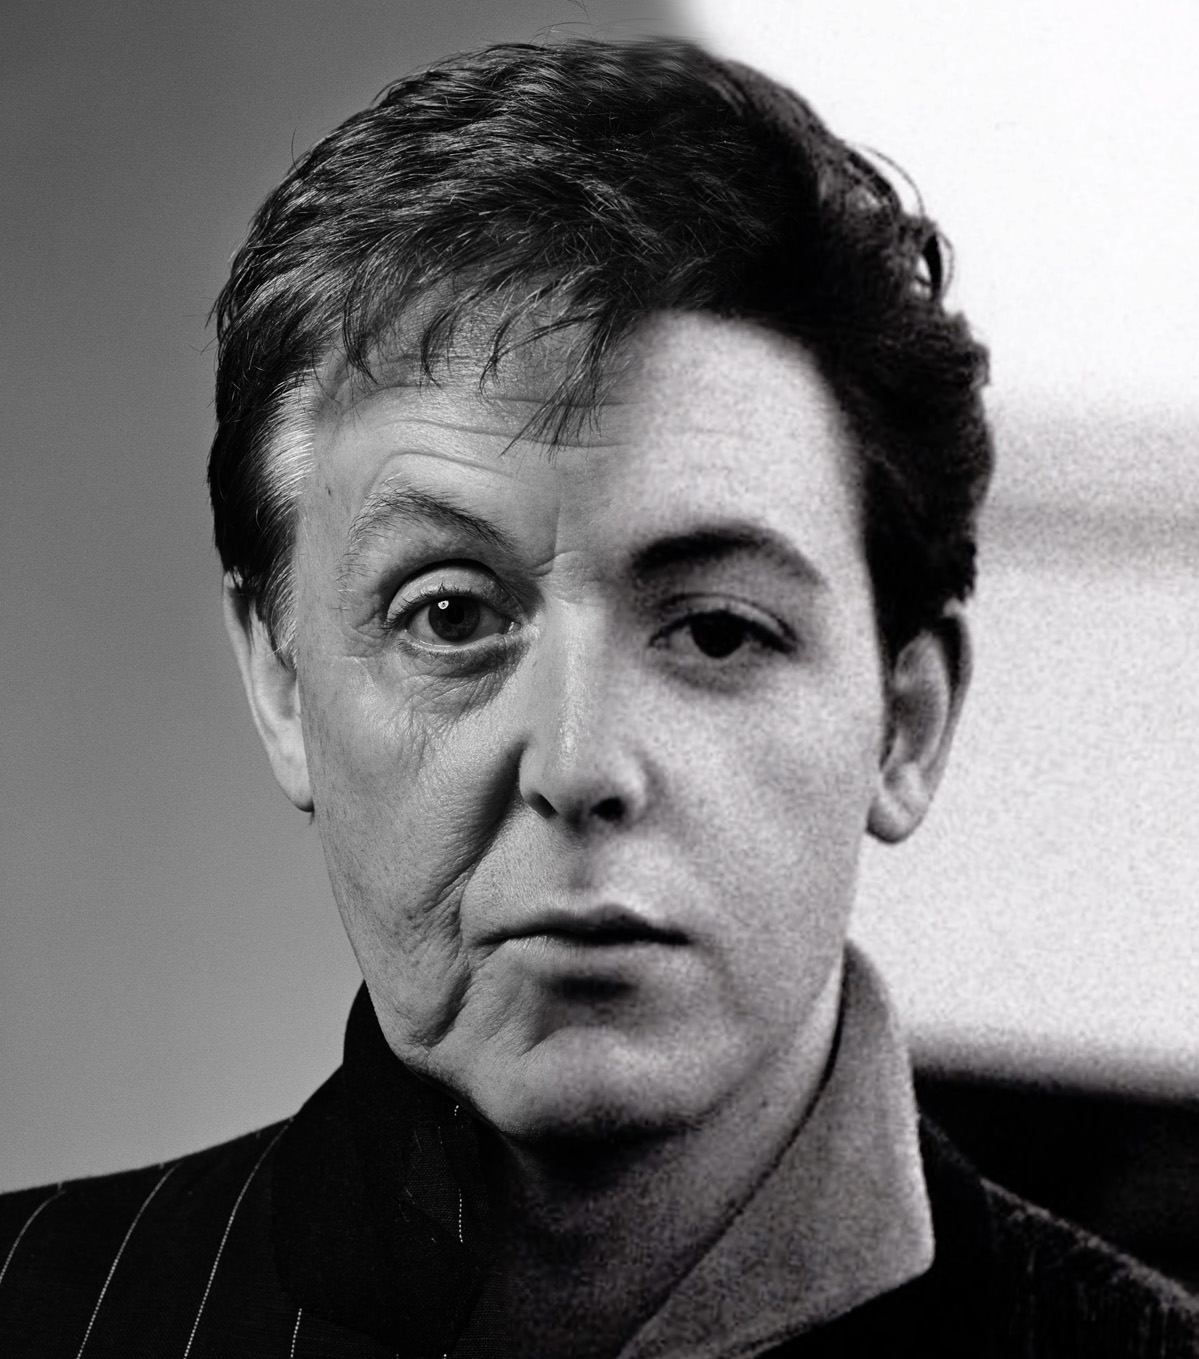 SIR PAUL! THEY SAY IT�...